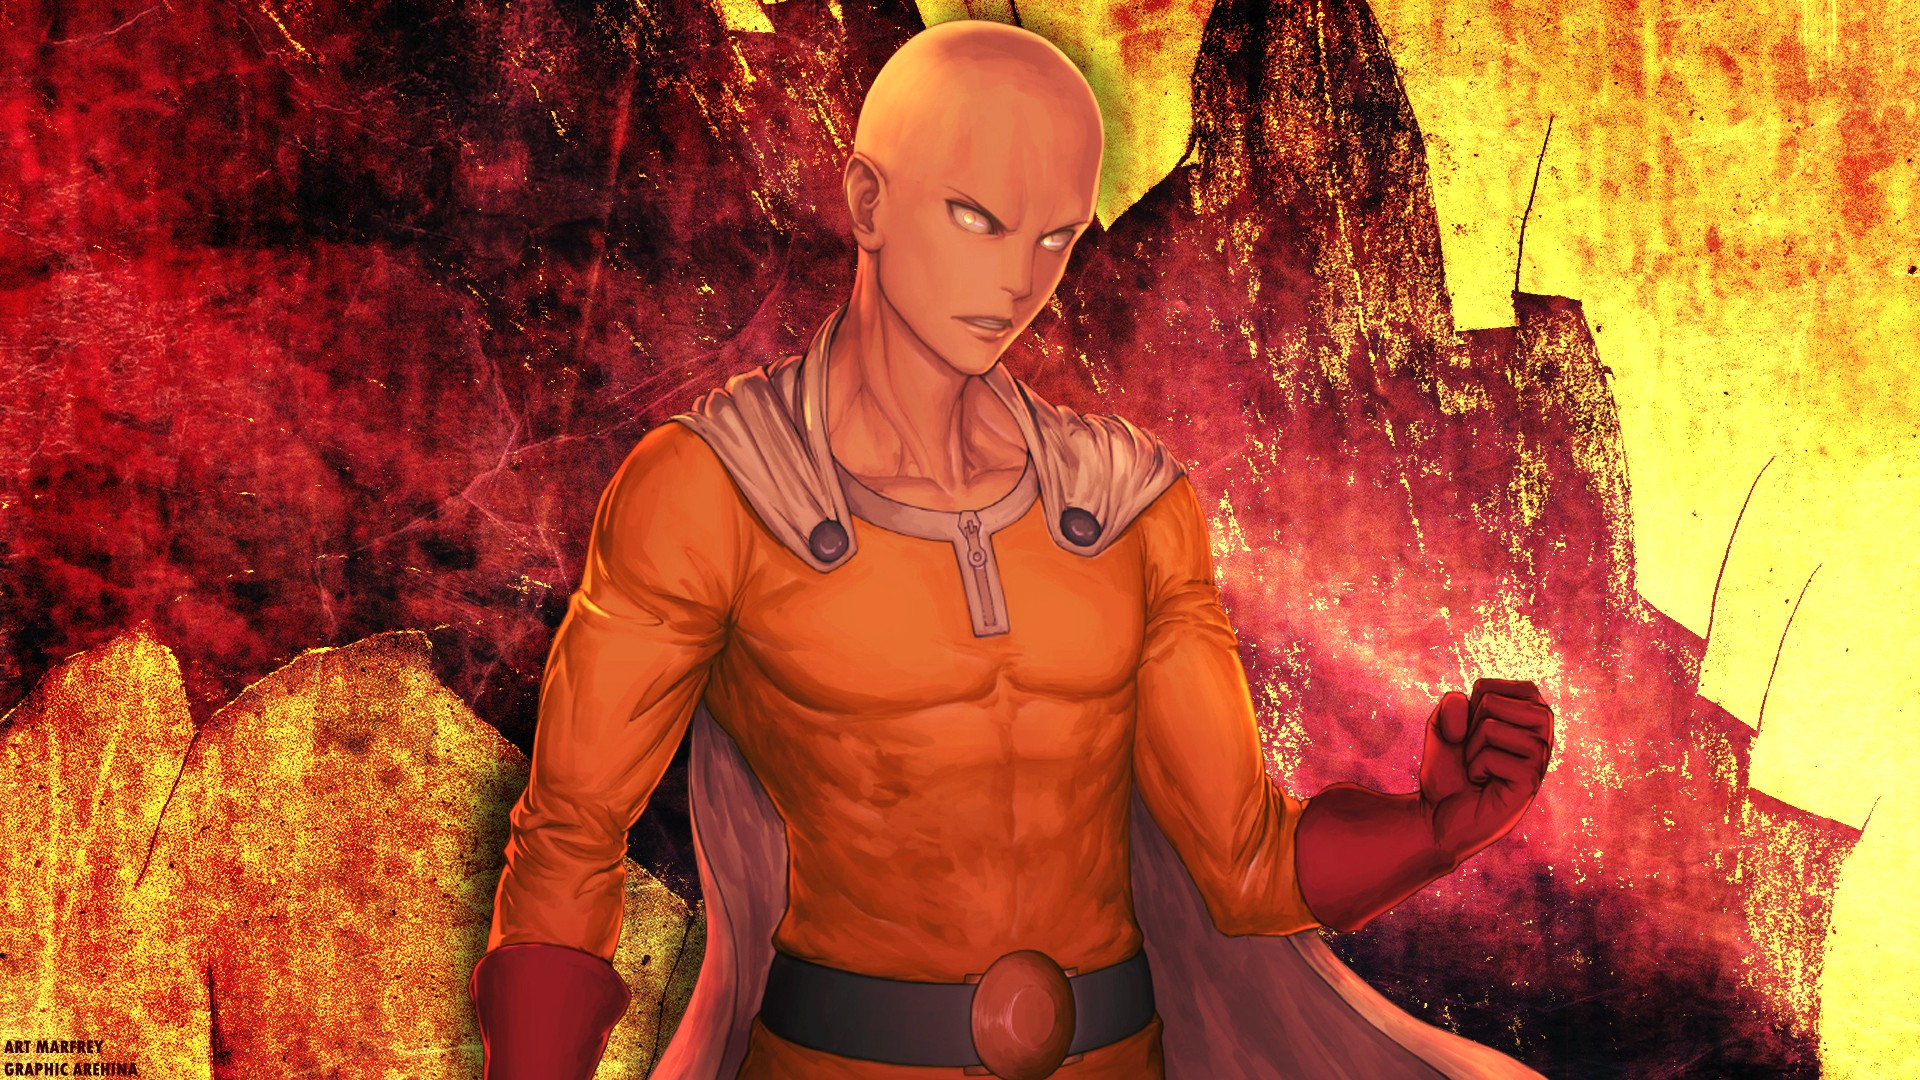 One Punch Man Wallpaper 1920x1080 Download Free Stunning Hd